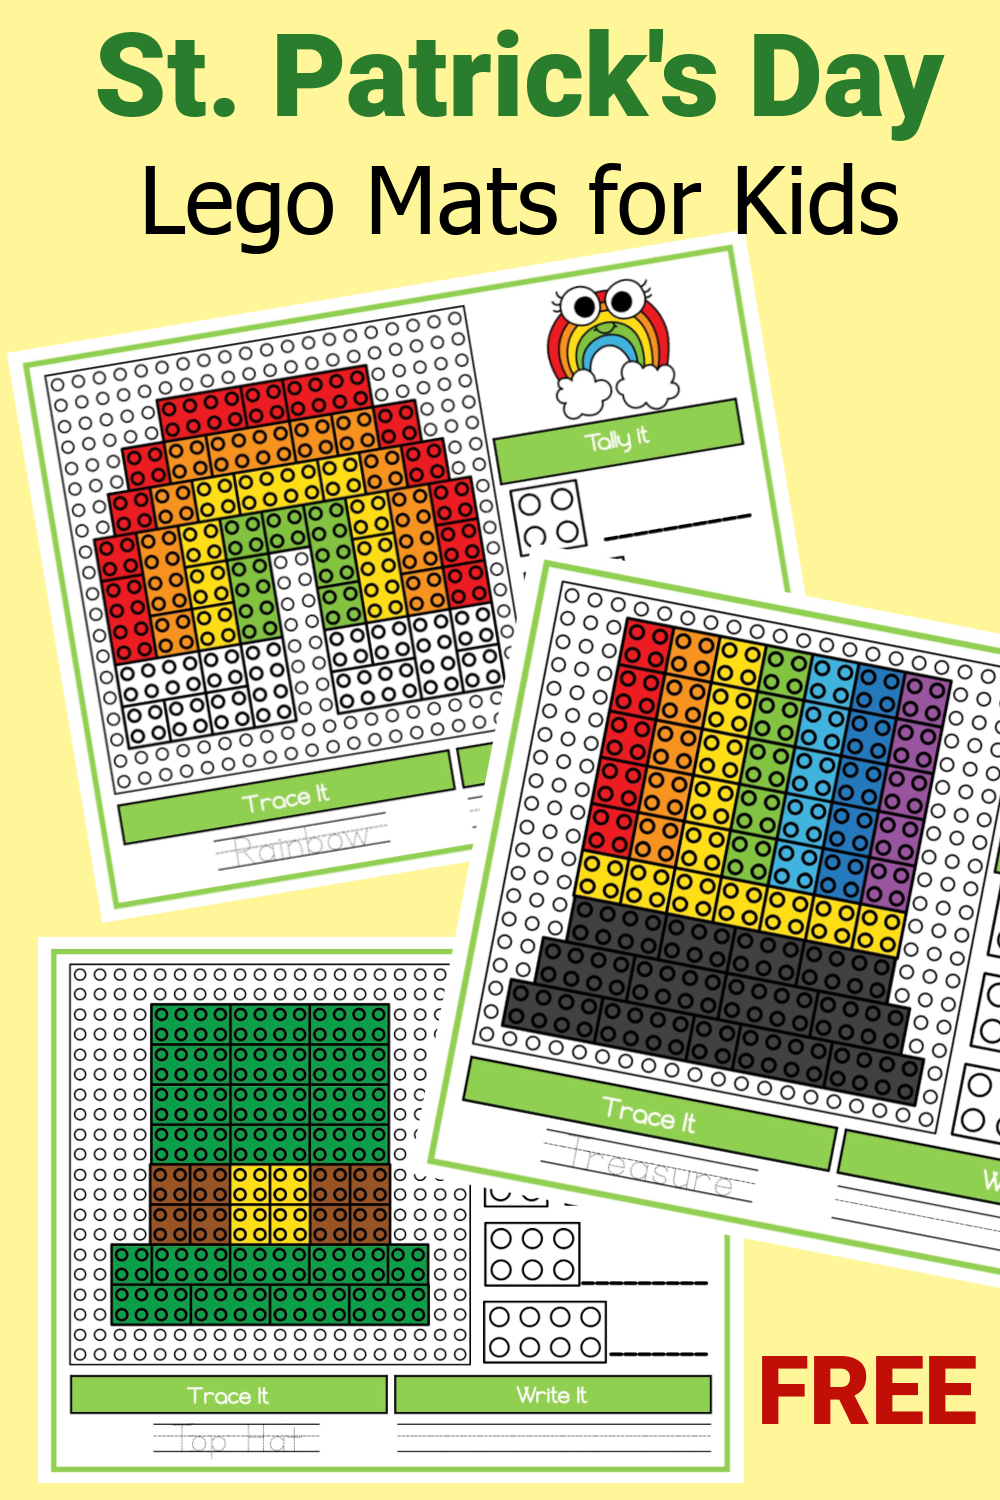 St. Patrick's Day Lego Mats for Kids